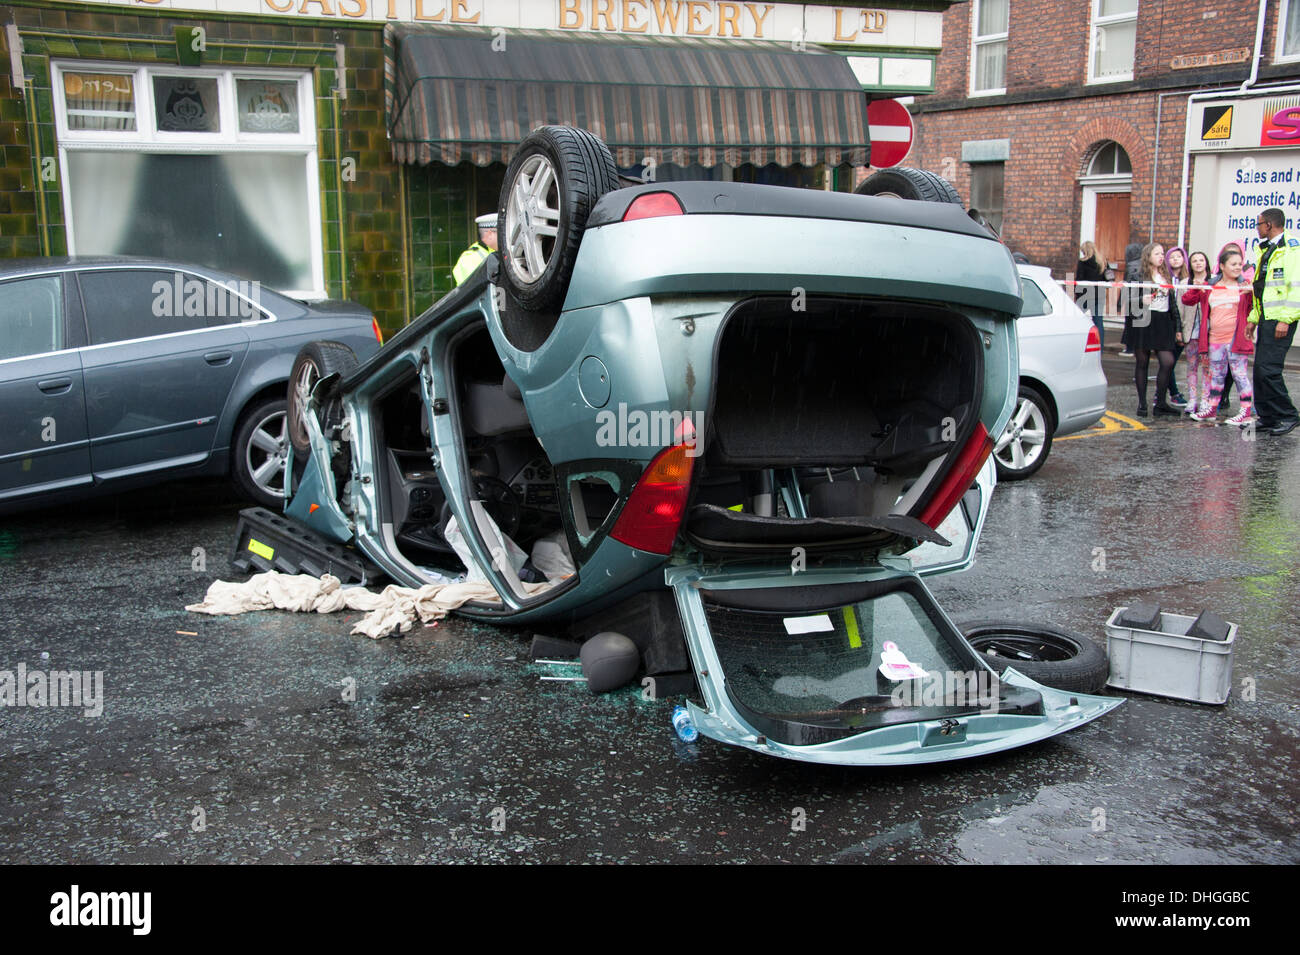 Car Crash overturned on roof rescue - Stock Image